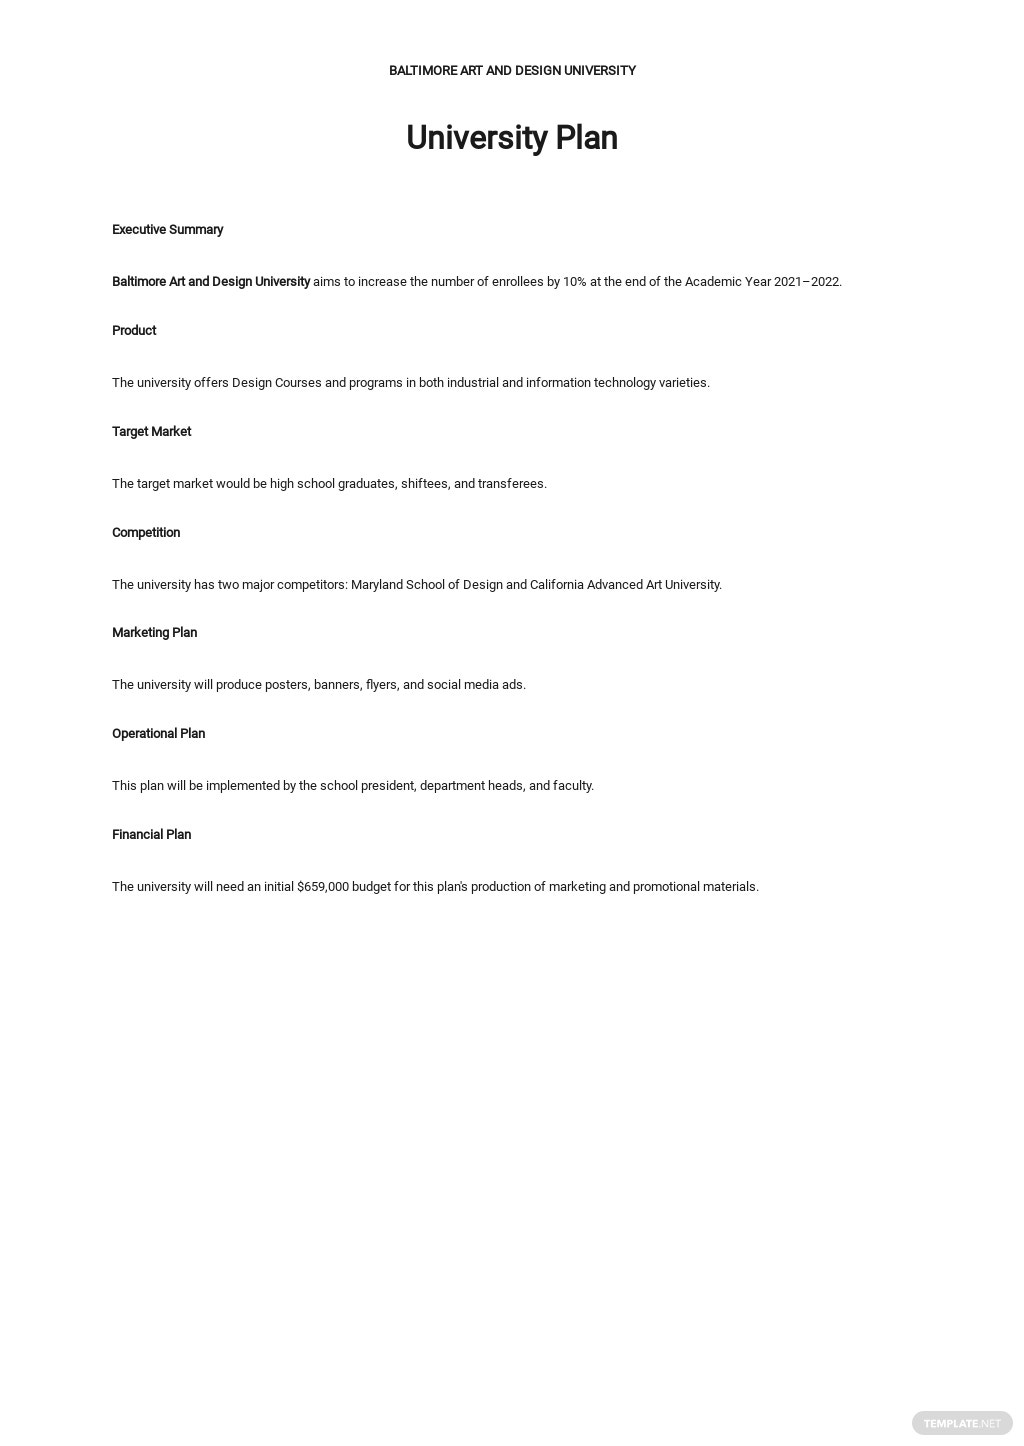 One Page University Plan Template